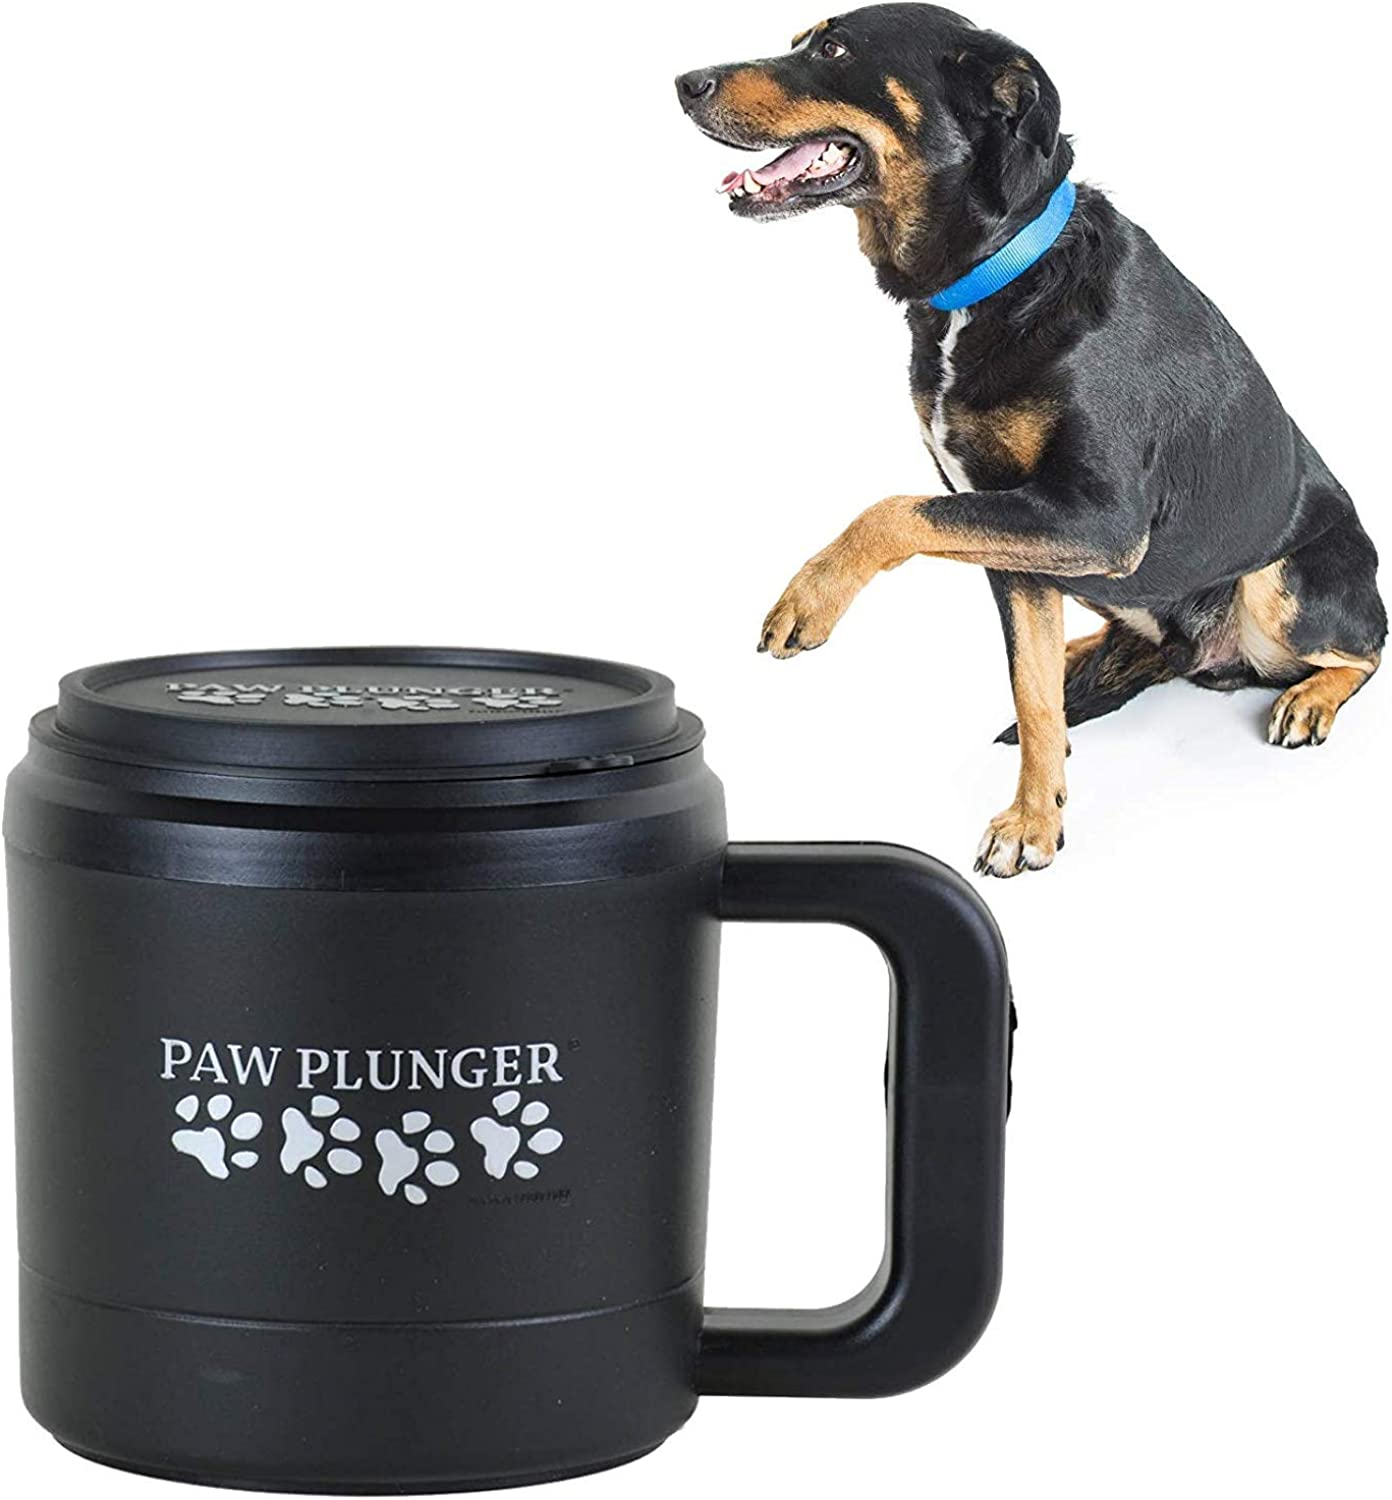 Paw Plunger for Dogs, MediumBlack